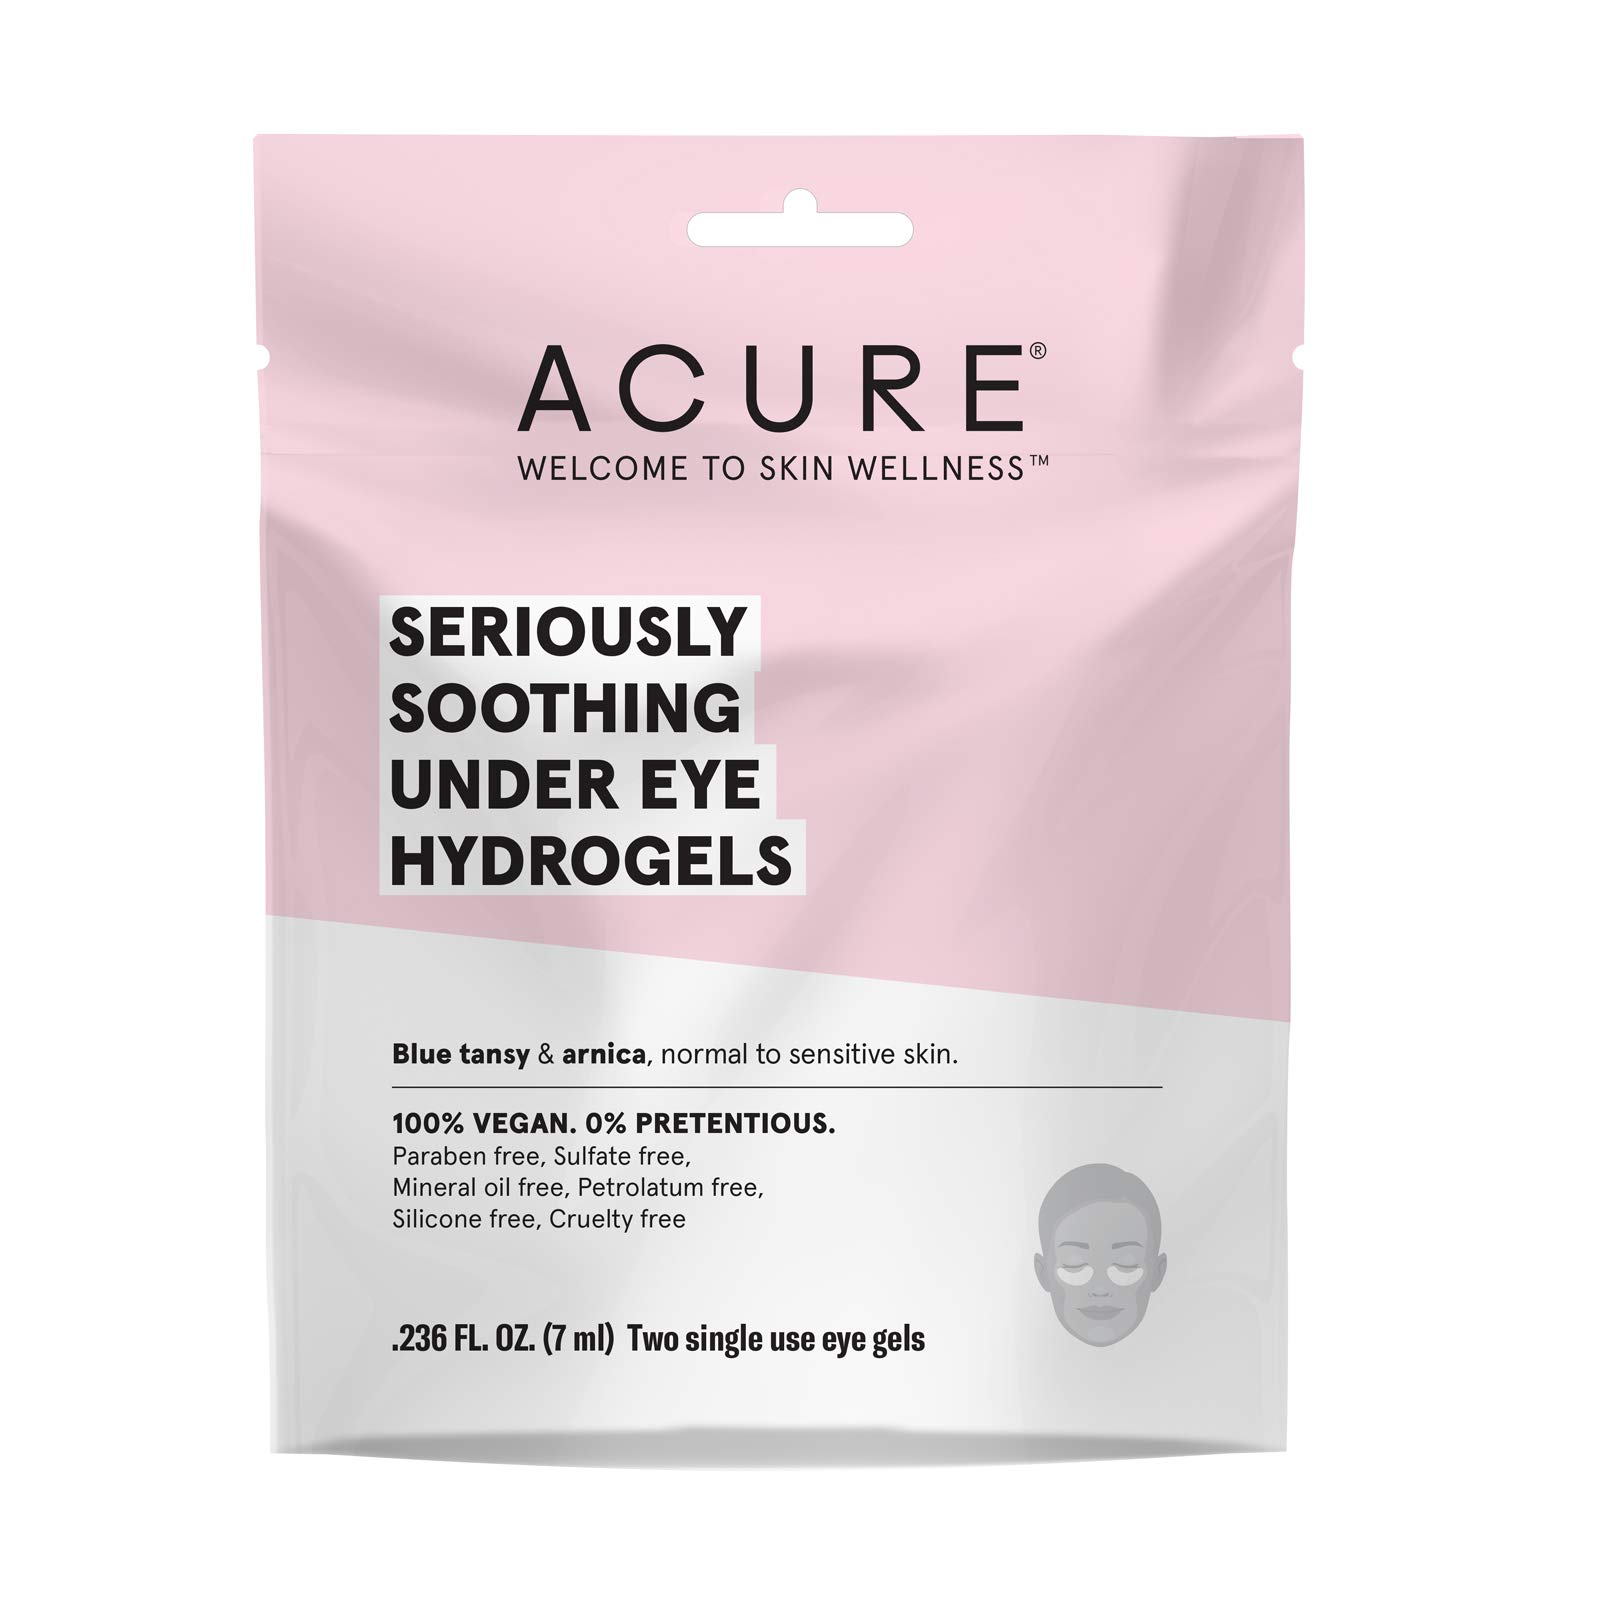 Acure Seriously Soothing Under Eye Hydrogels, 12 Count